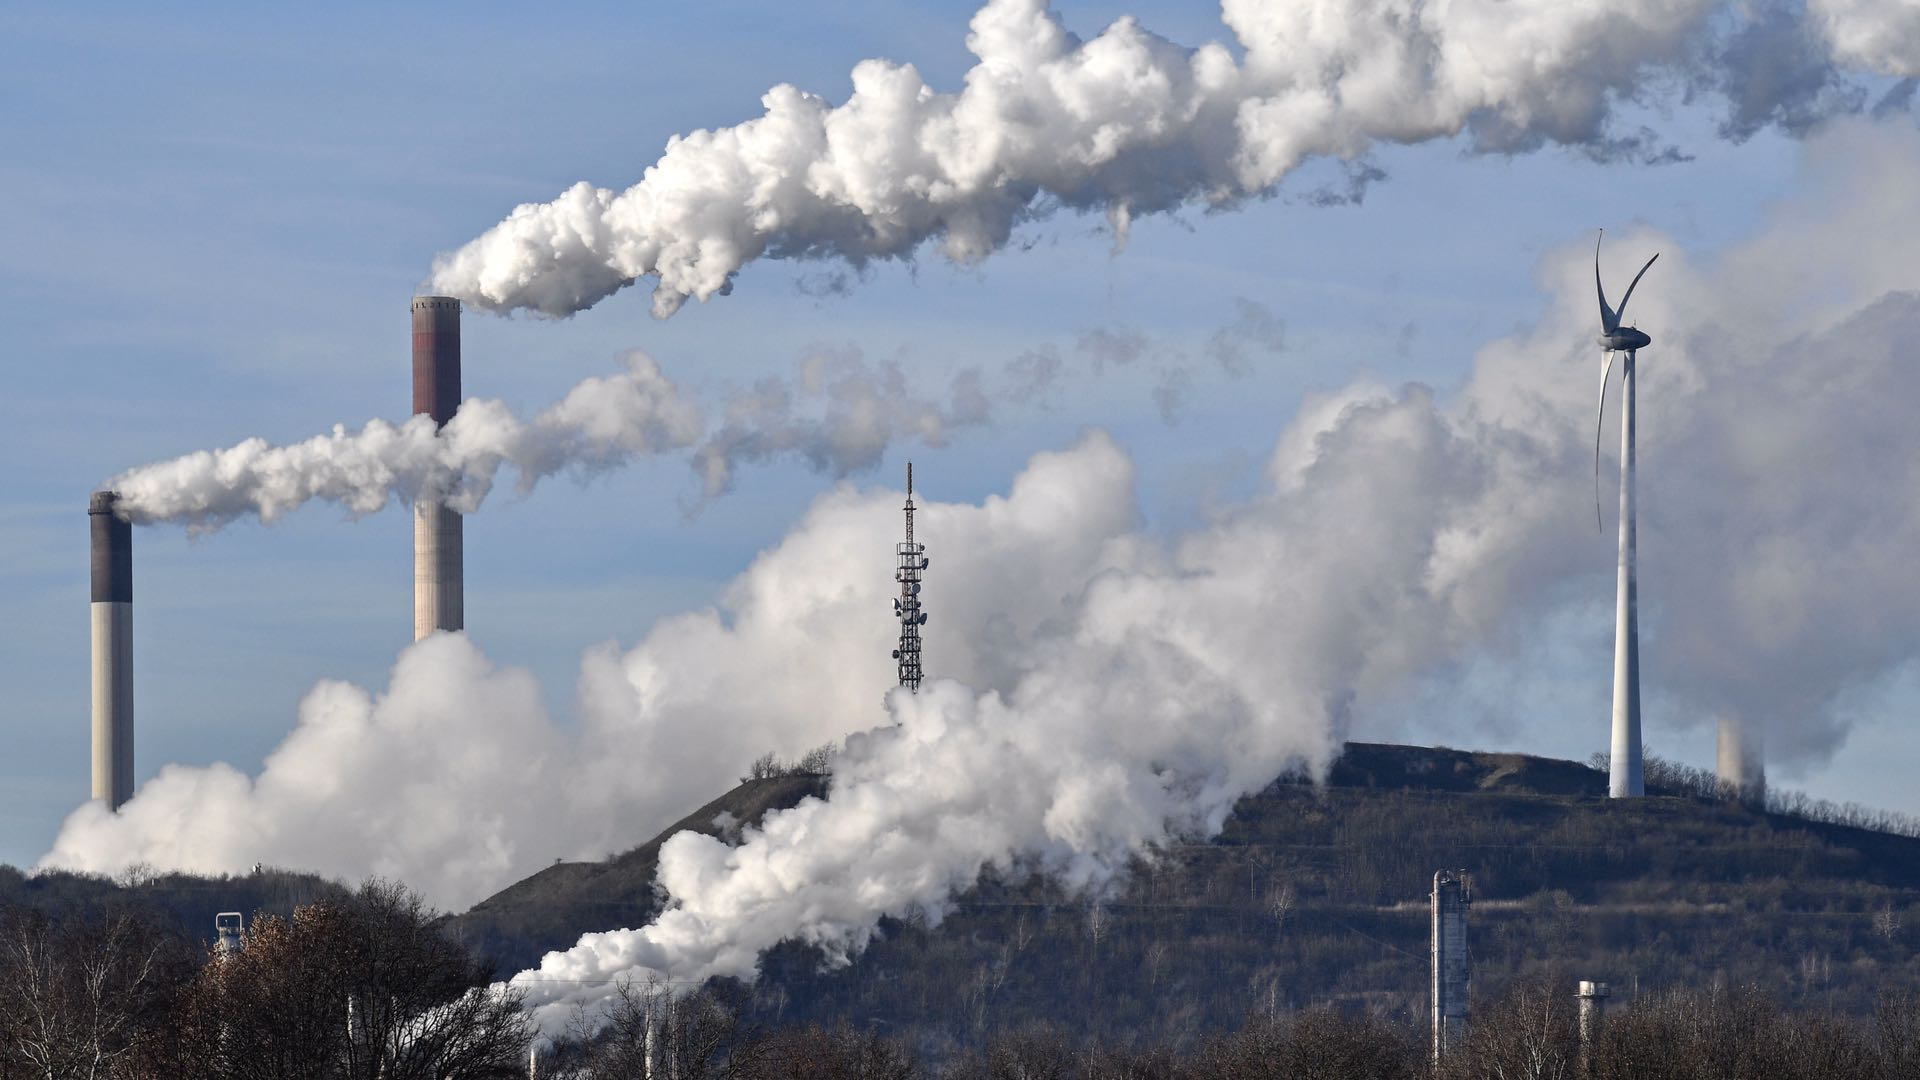 Coronavirus: Stimulus for coal plants to result in losses, more emissions